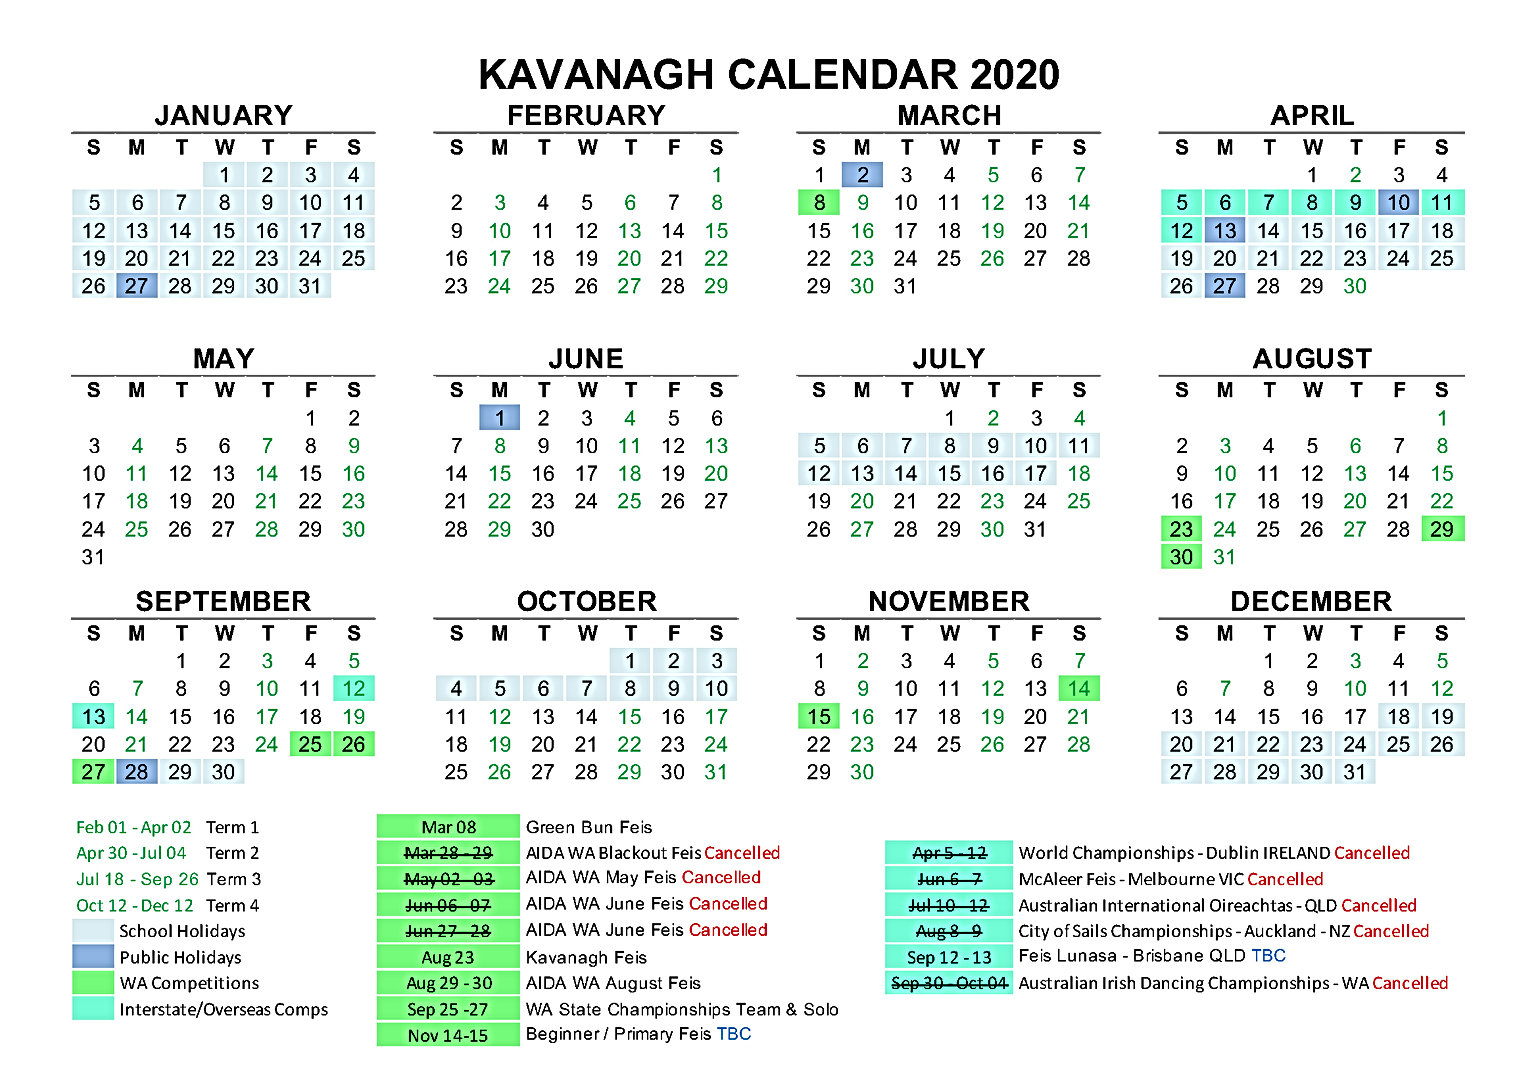 2020 Kavanagh Calendar Updated July 2020